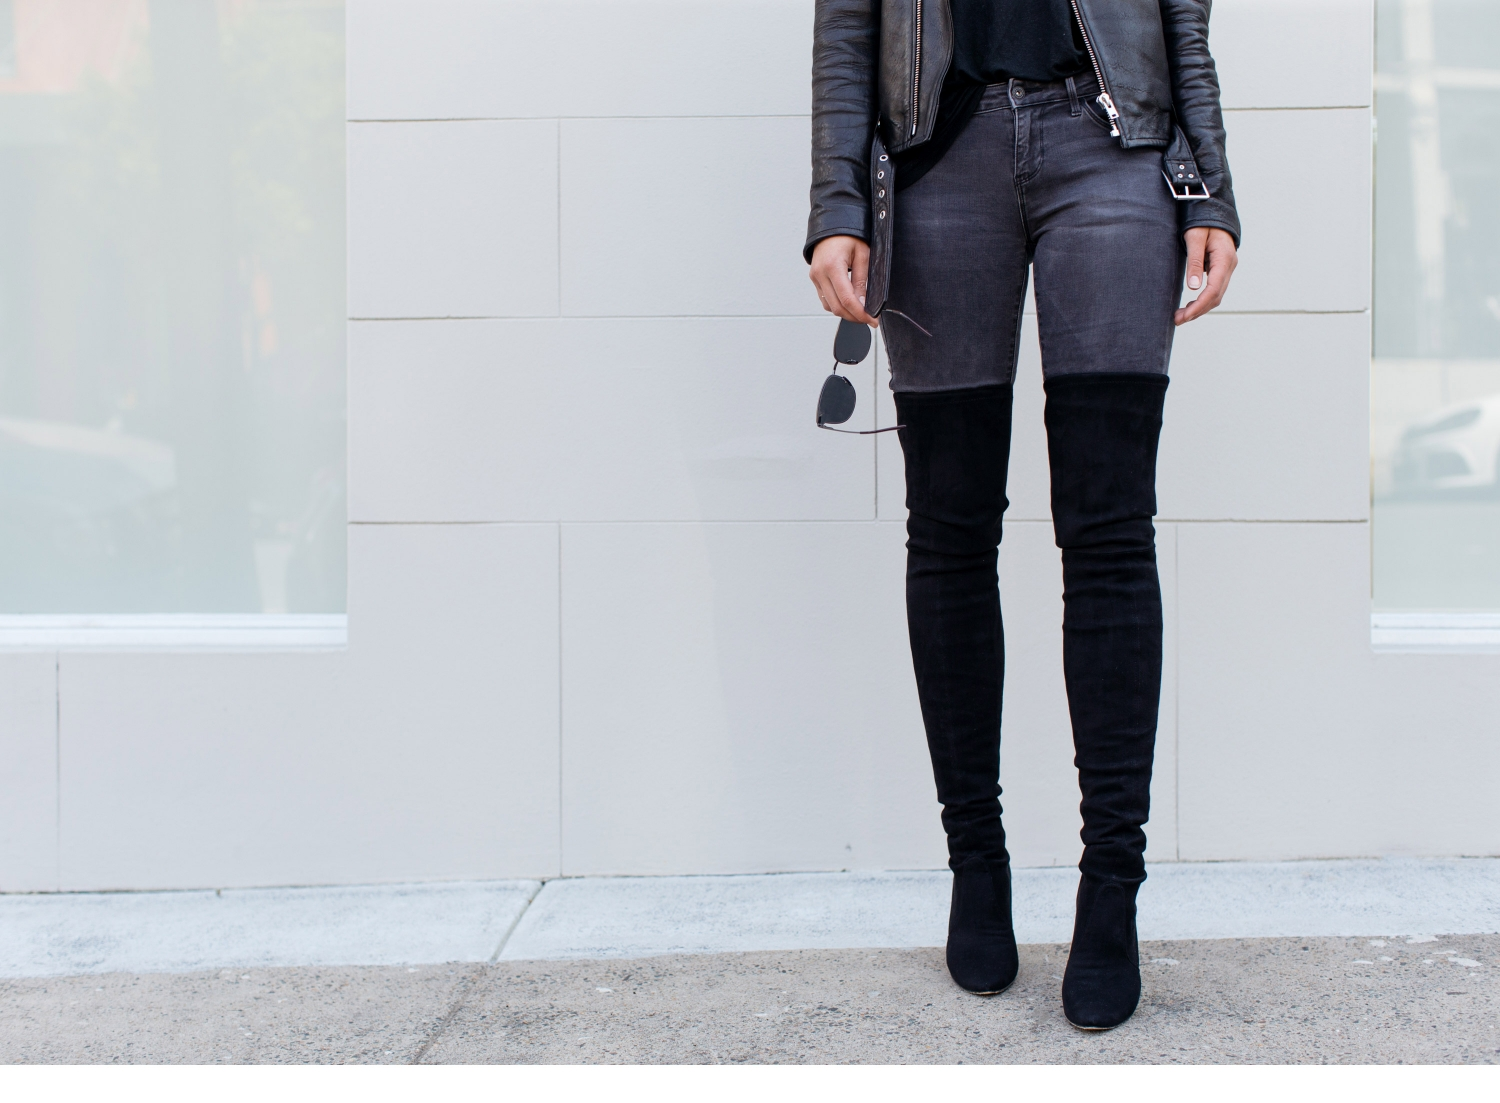 black leather jacket, grey jeans, black over the knee stuart weitzman boots, Sara Donaldson street style | Harper and Harley